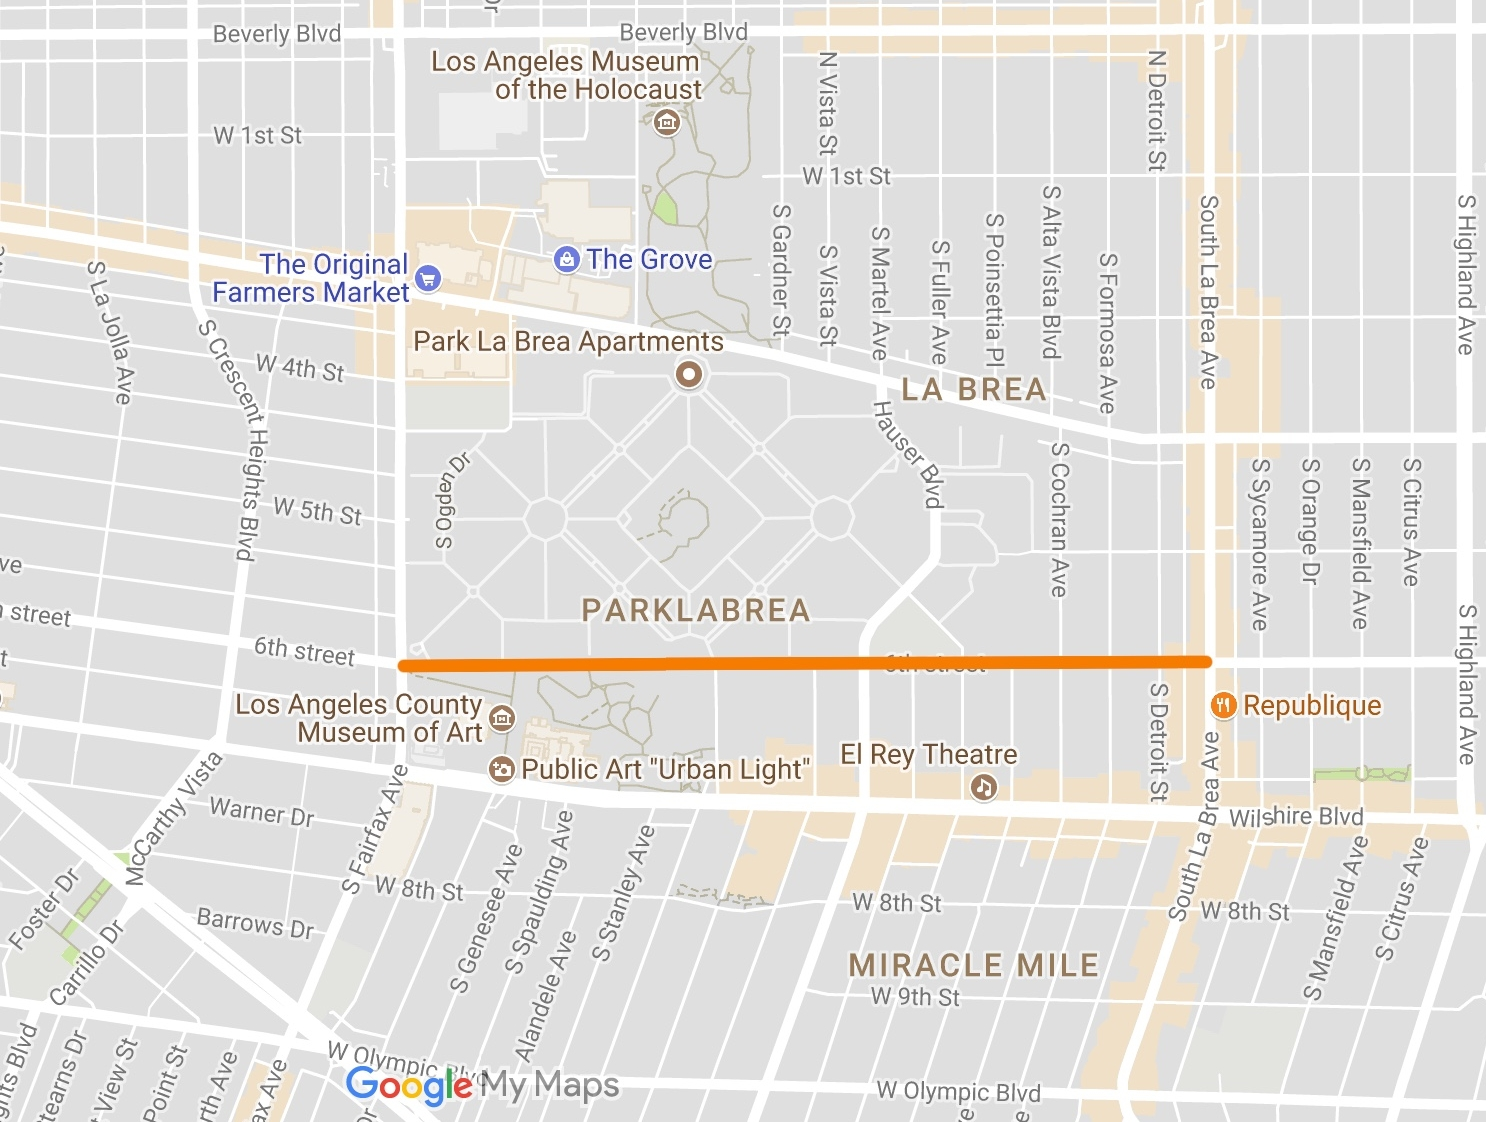 Special Interest Activists wanted to take away two heavily-used lanes from cars on 6th Street between Fairfax and Highland. Their plans would have created gridlock and without fixing the problems that led to past accidents.